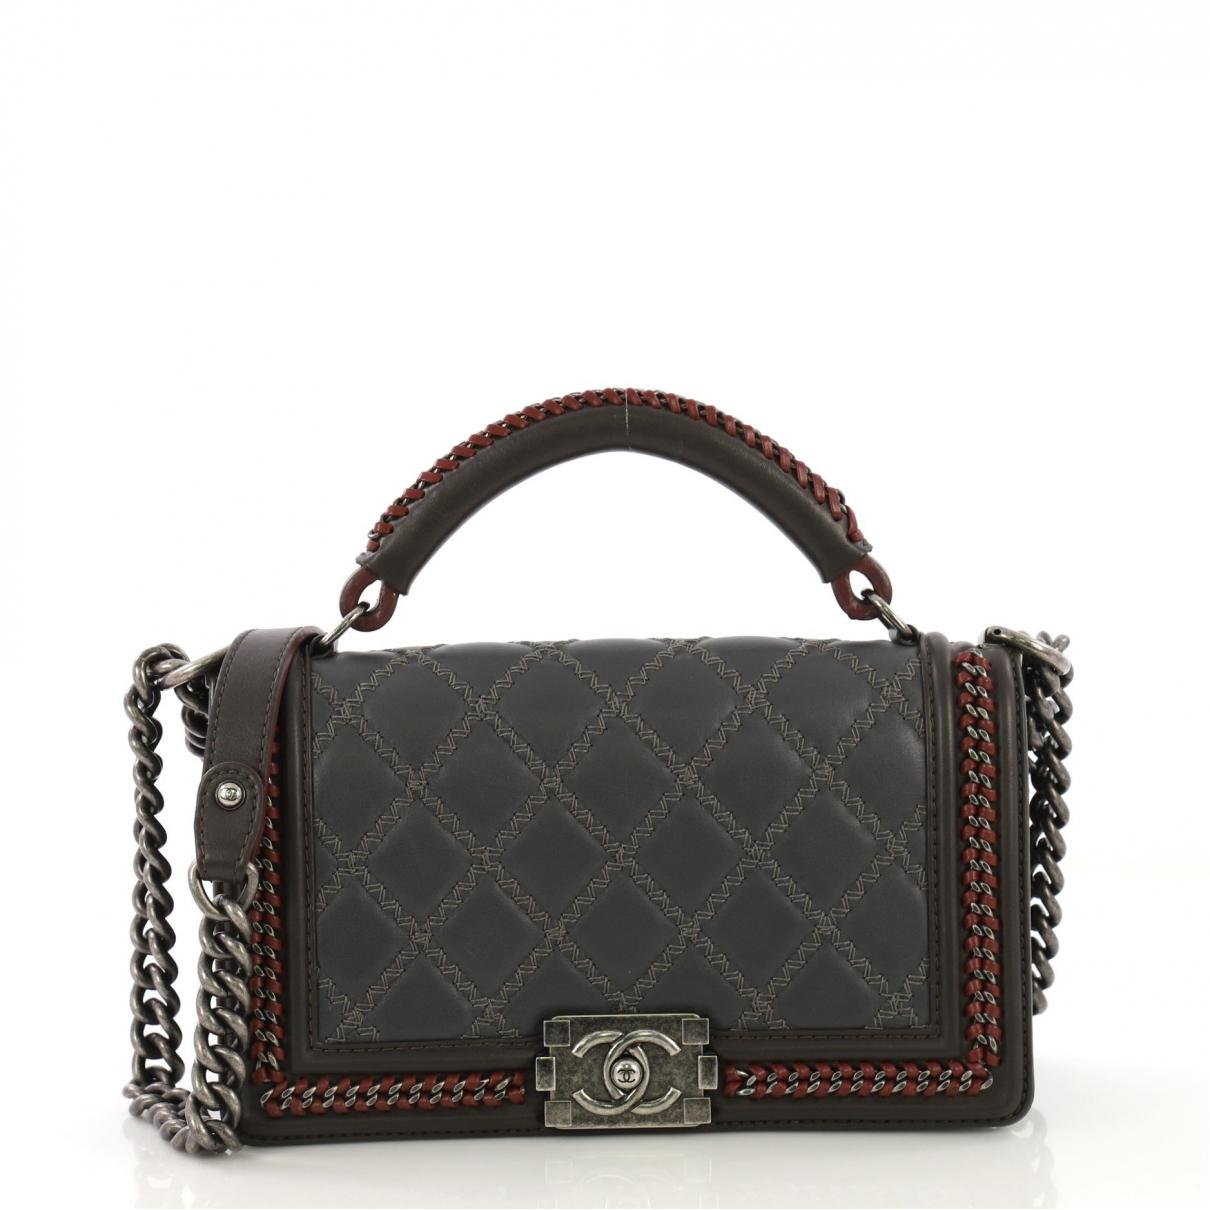 ae38dcd86980 Chanel. Women's Gray Pre-owned Boy Grey Leather Handbags. $5,625 From Vestiaire  Collective